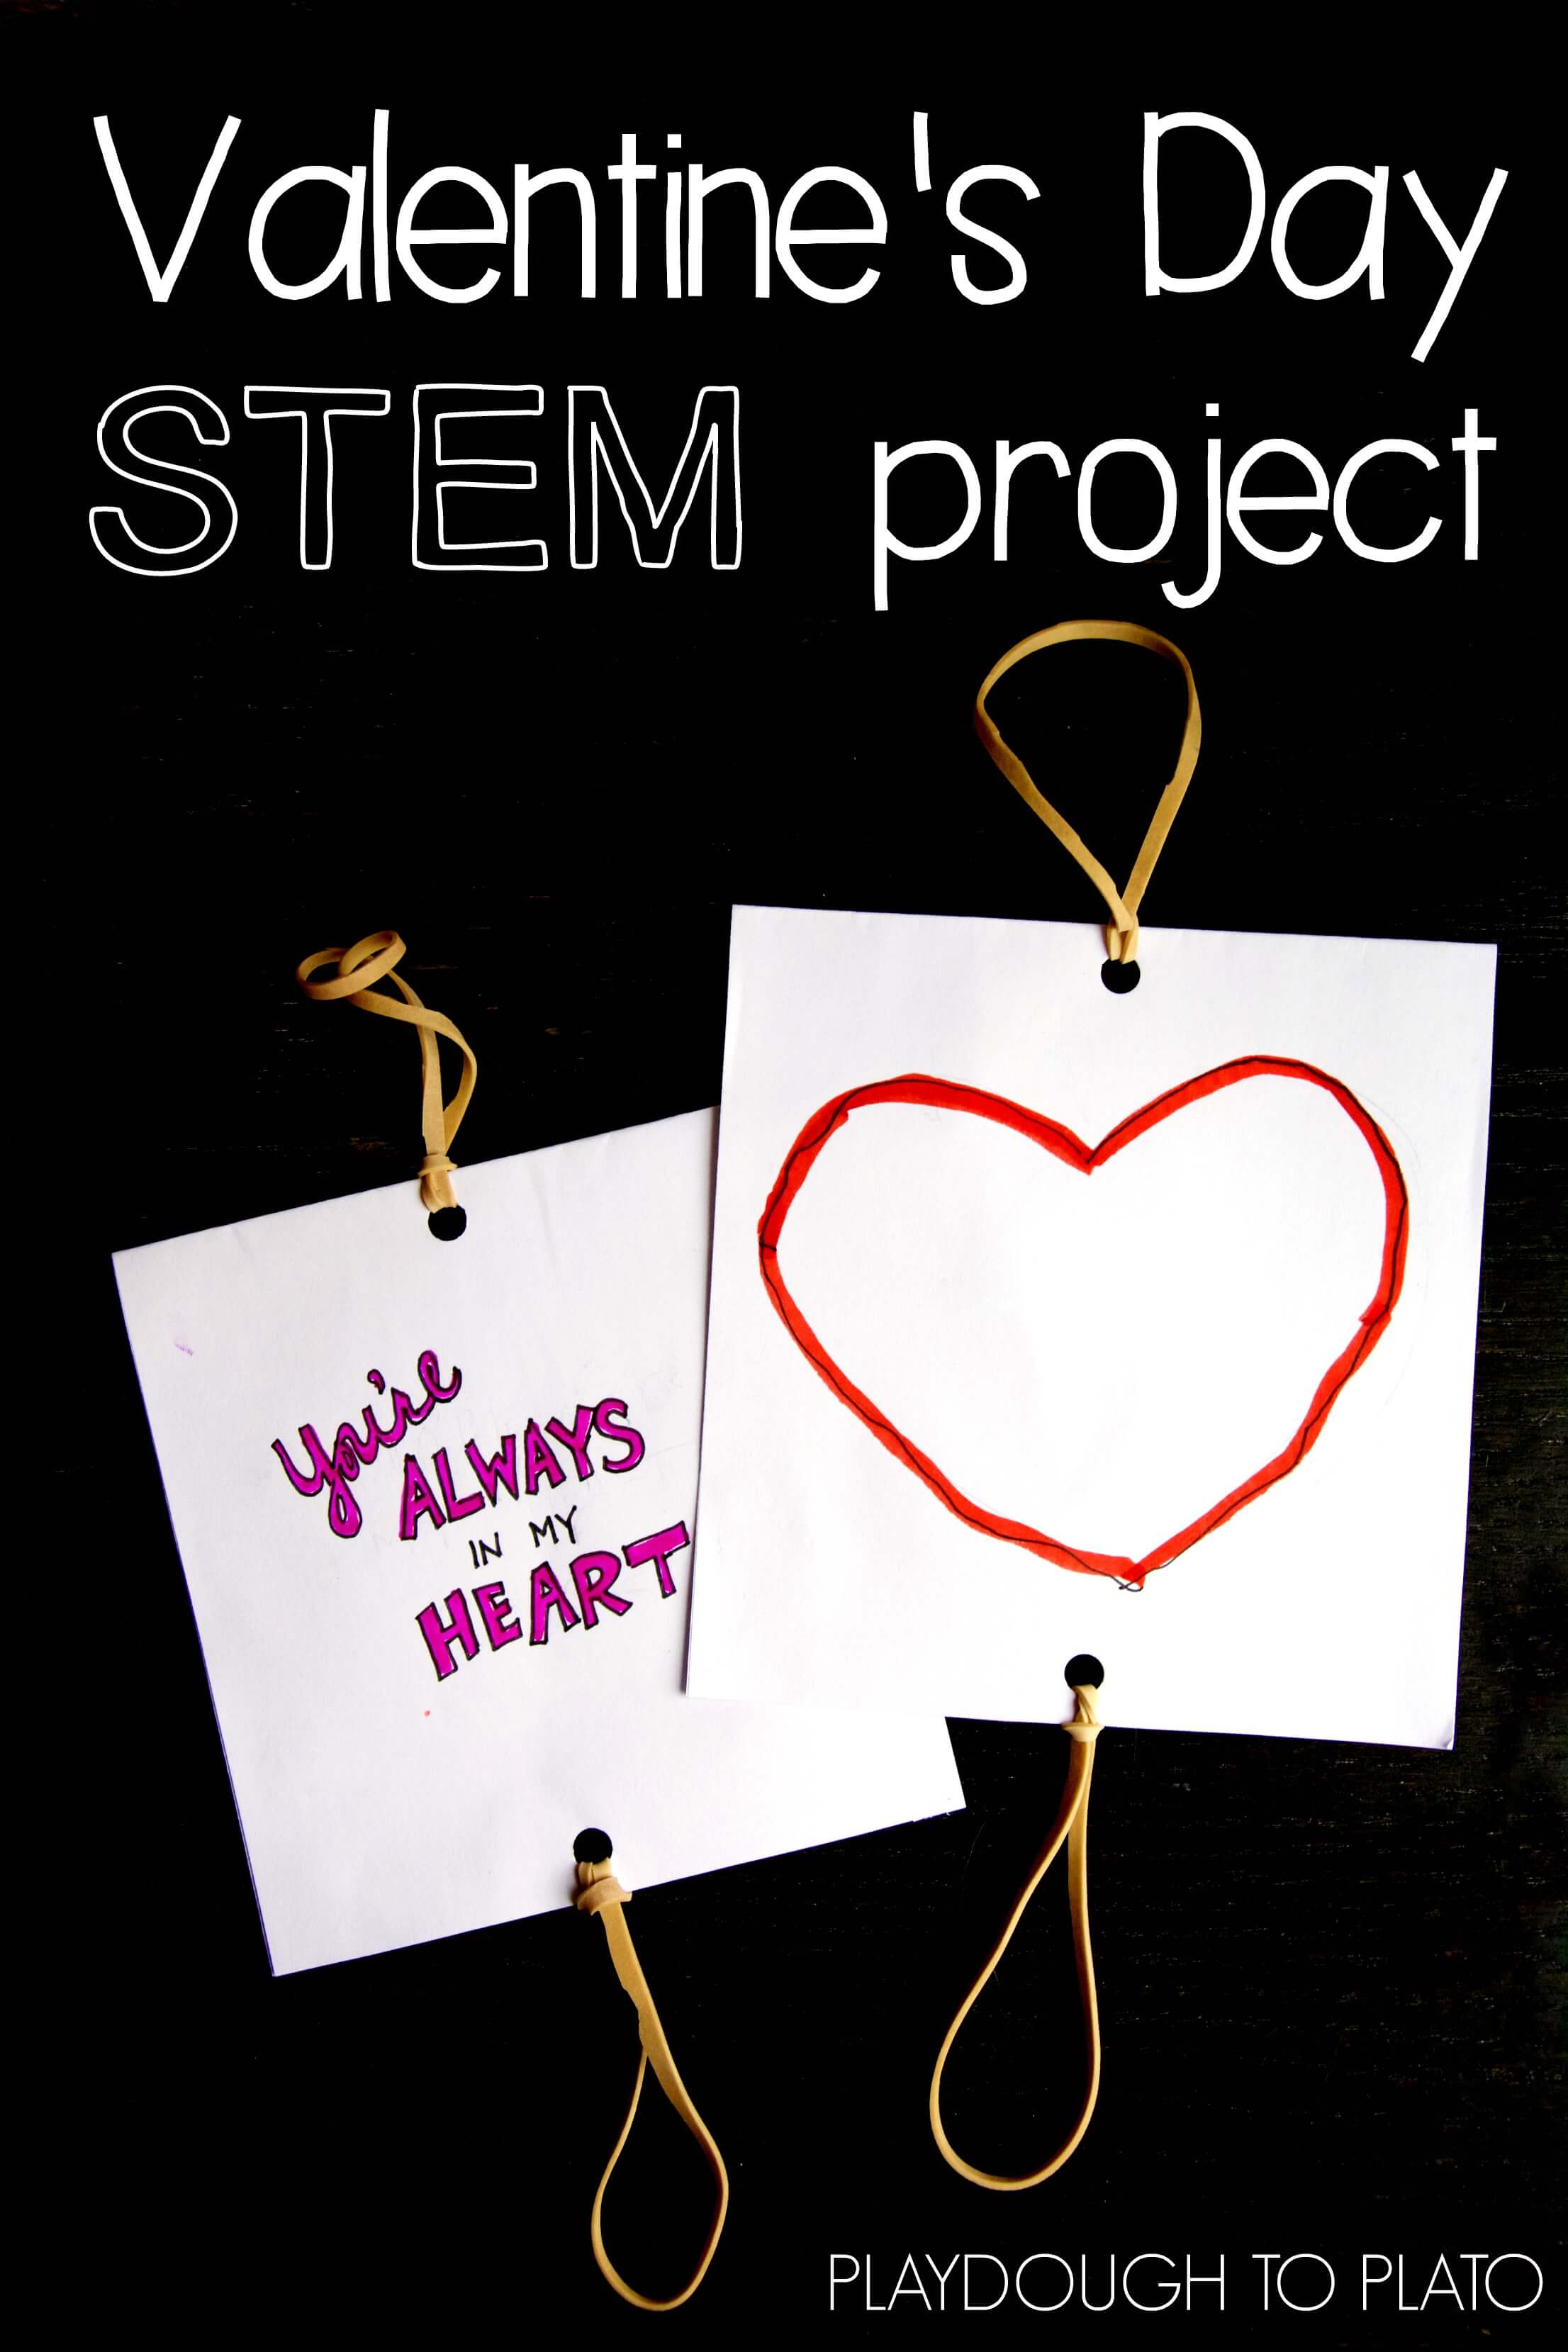 Valentineu0027s Day STEM Project! Make Optical Illusion Thaumatropes!